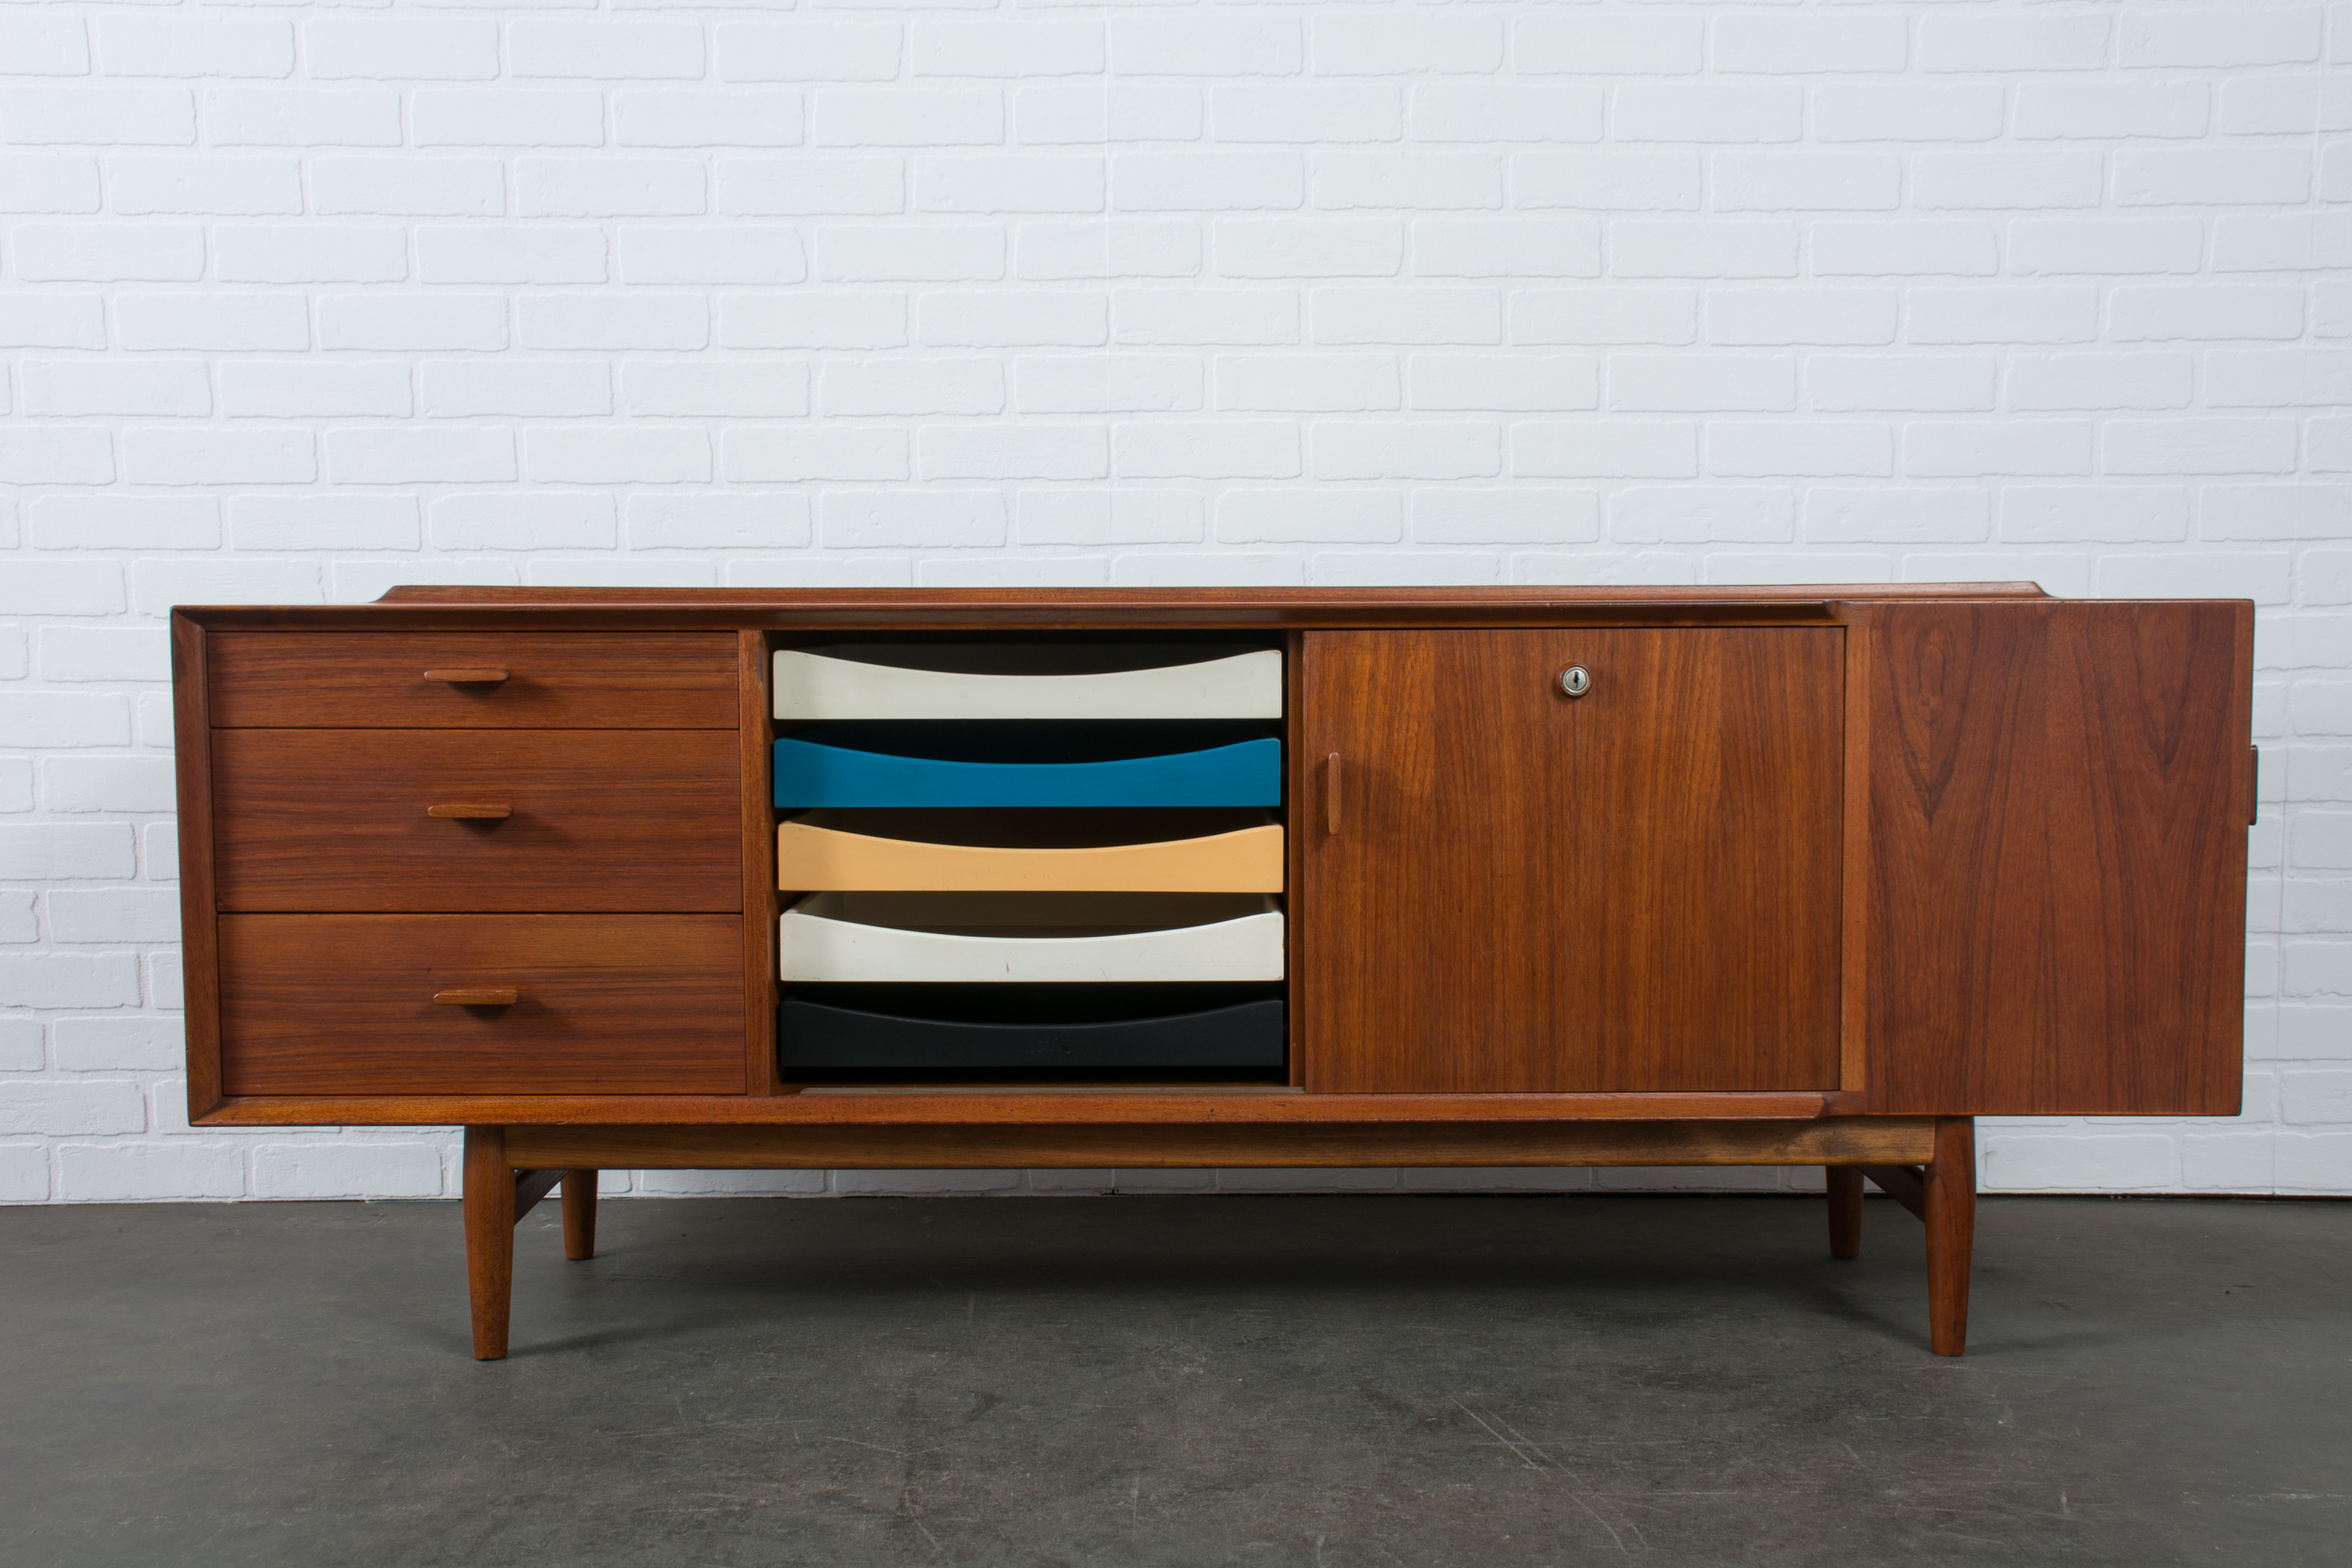 Copy of Vintage Mid-Century Sideboard by Arne Vodder